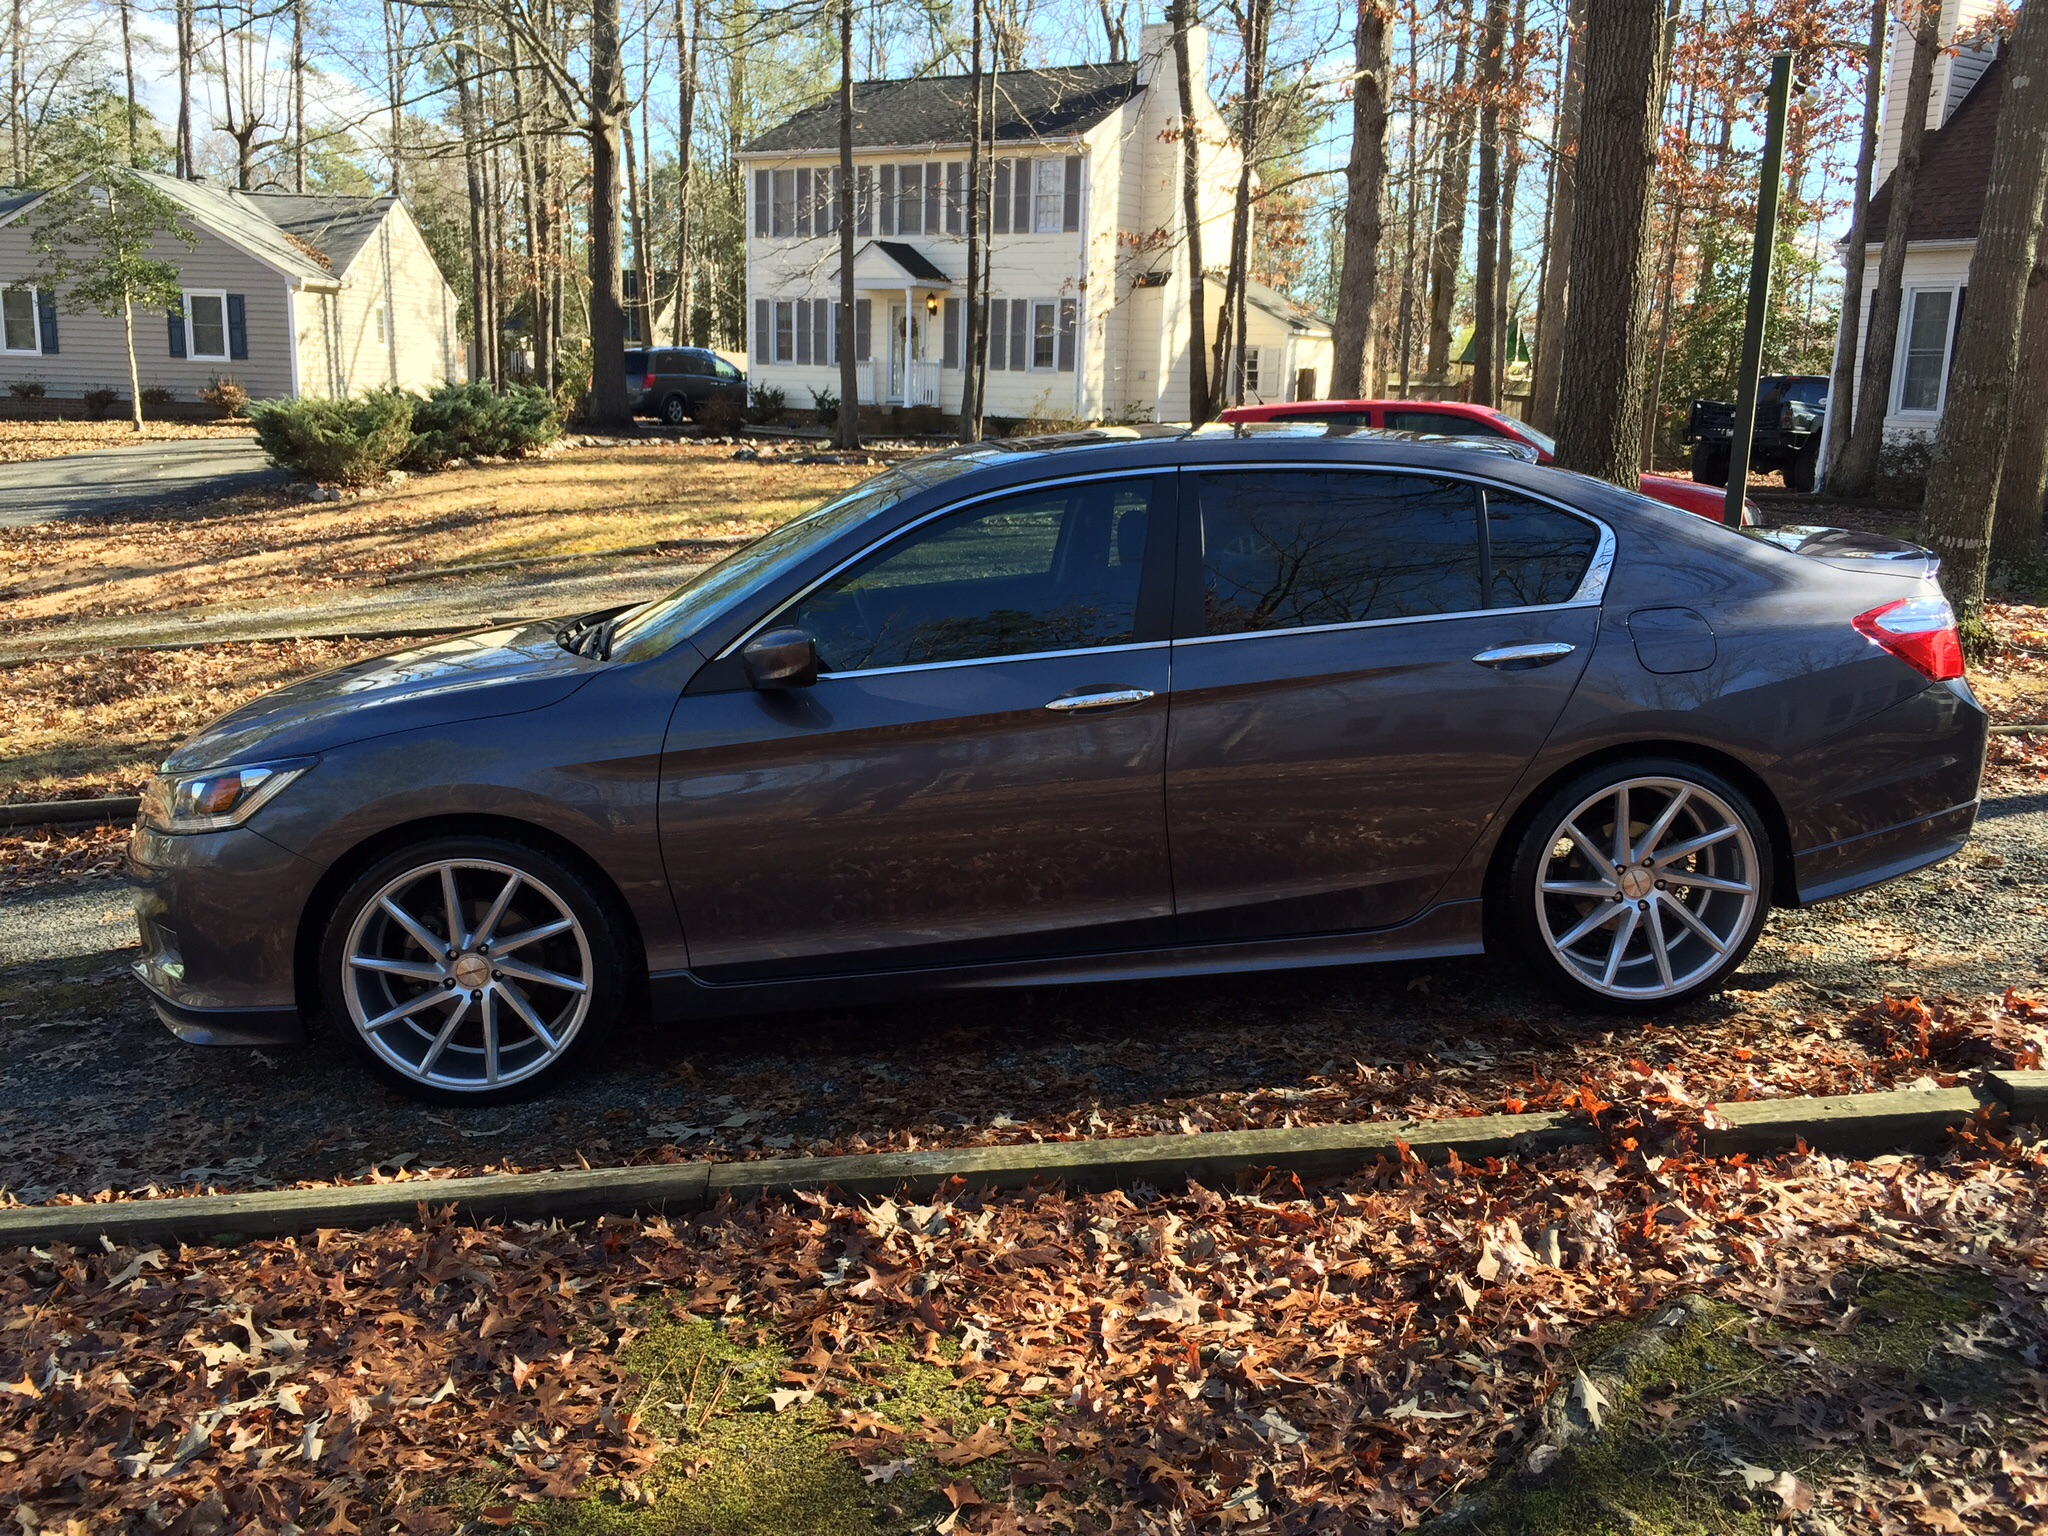 2014 honda accord mods  Coreyrob71 2014 Honda Accord Specs, Photos, Modification Info at ...